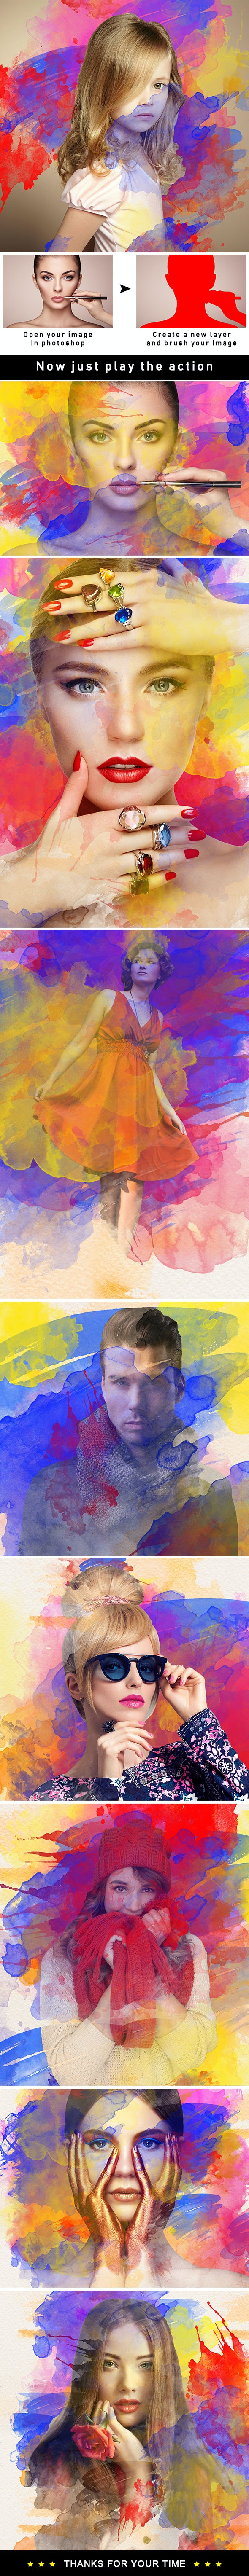 Water Color Splash Photoshop Action - Photo Effects Actions